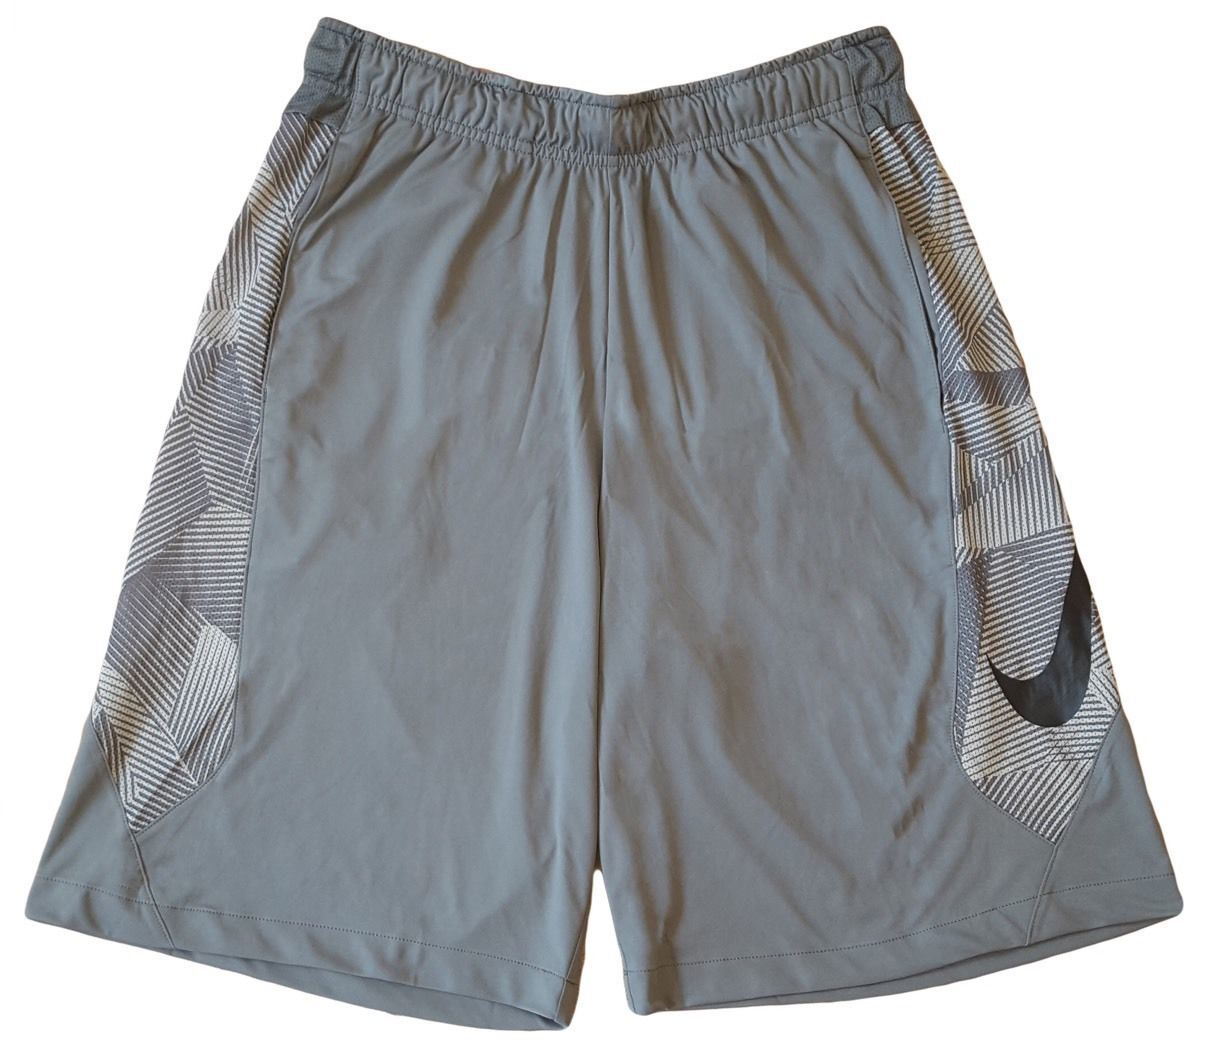 762d8ccb8571 Home   Men s Clothing and Jackets   Nike Dri-FIT Gray Basketball Shorts  Athletic Swoosh Men s Size Large 839523-037